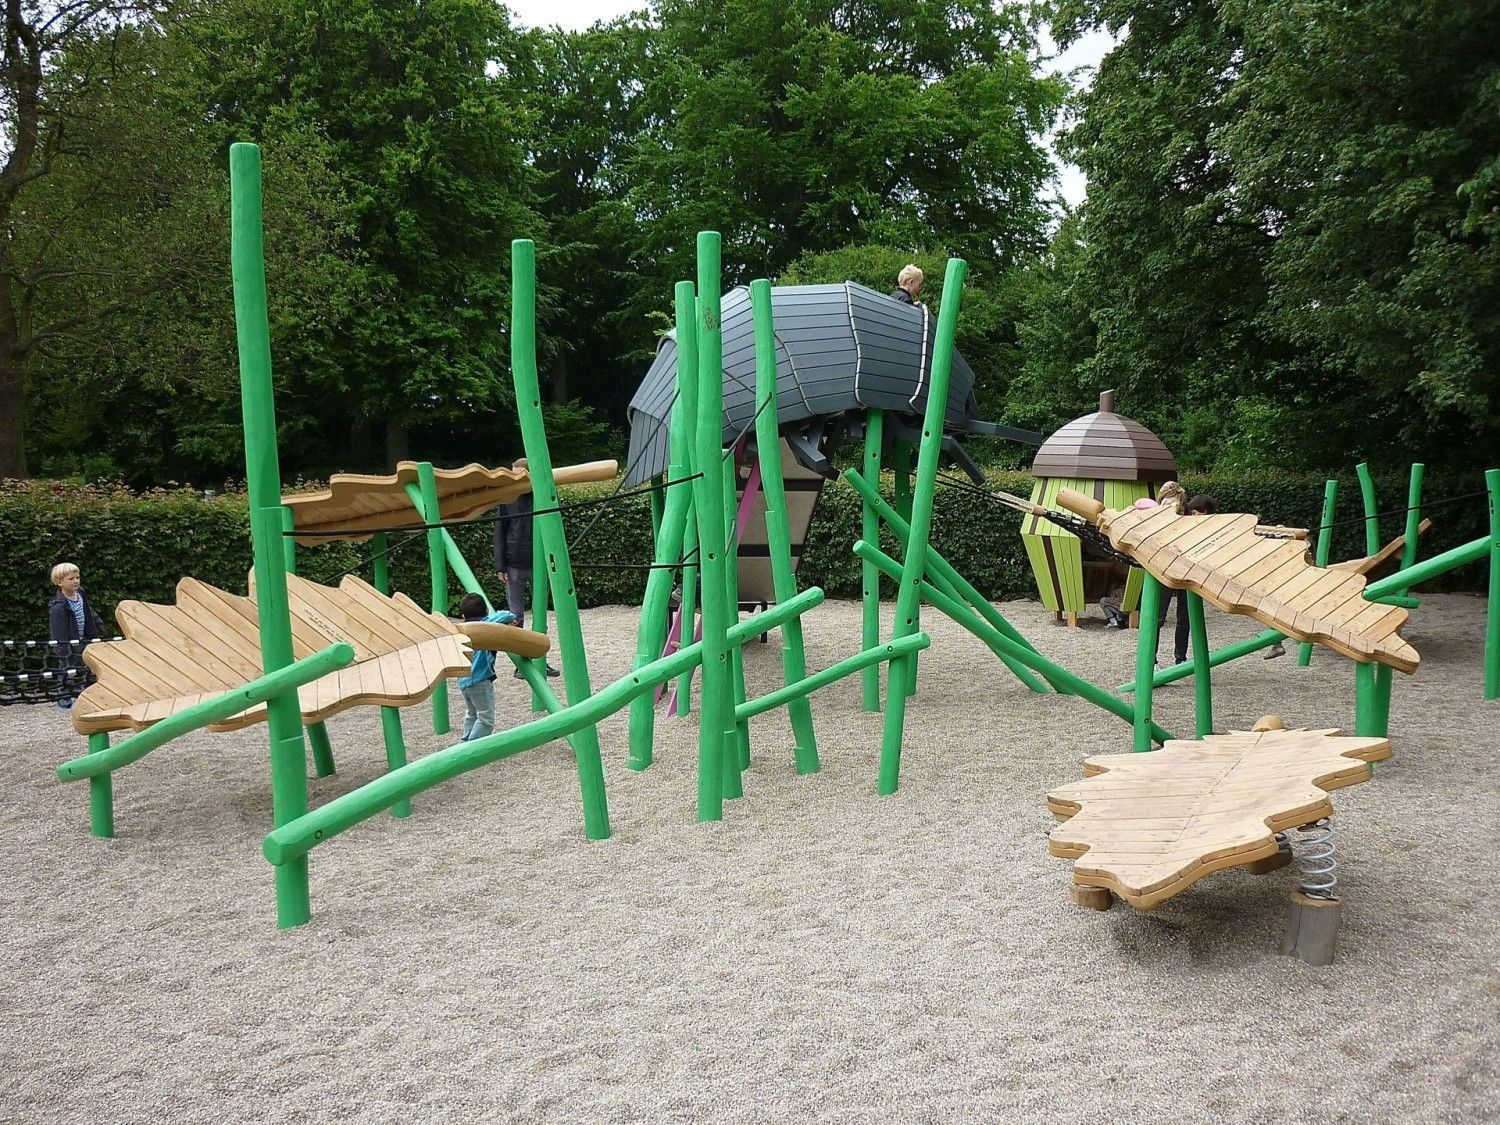 75 must-visit outdoor adventure parks_MonstrumRolypoly nymosen denmark